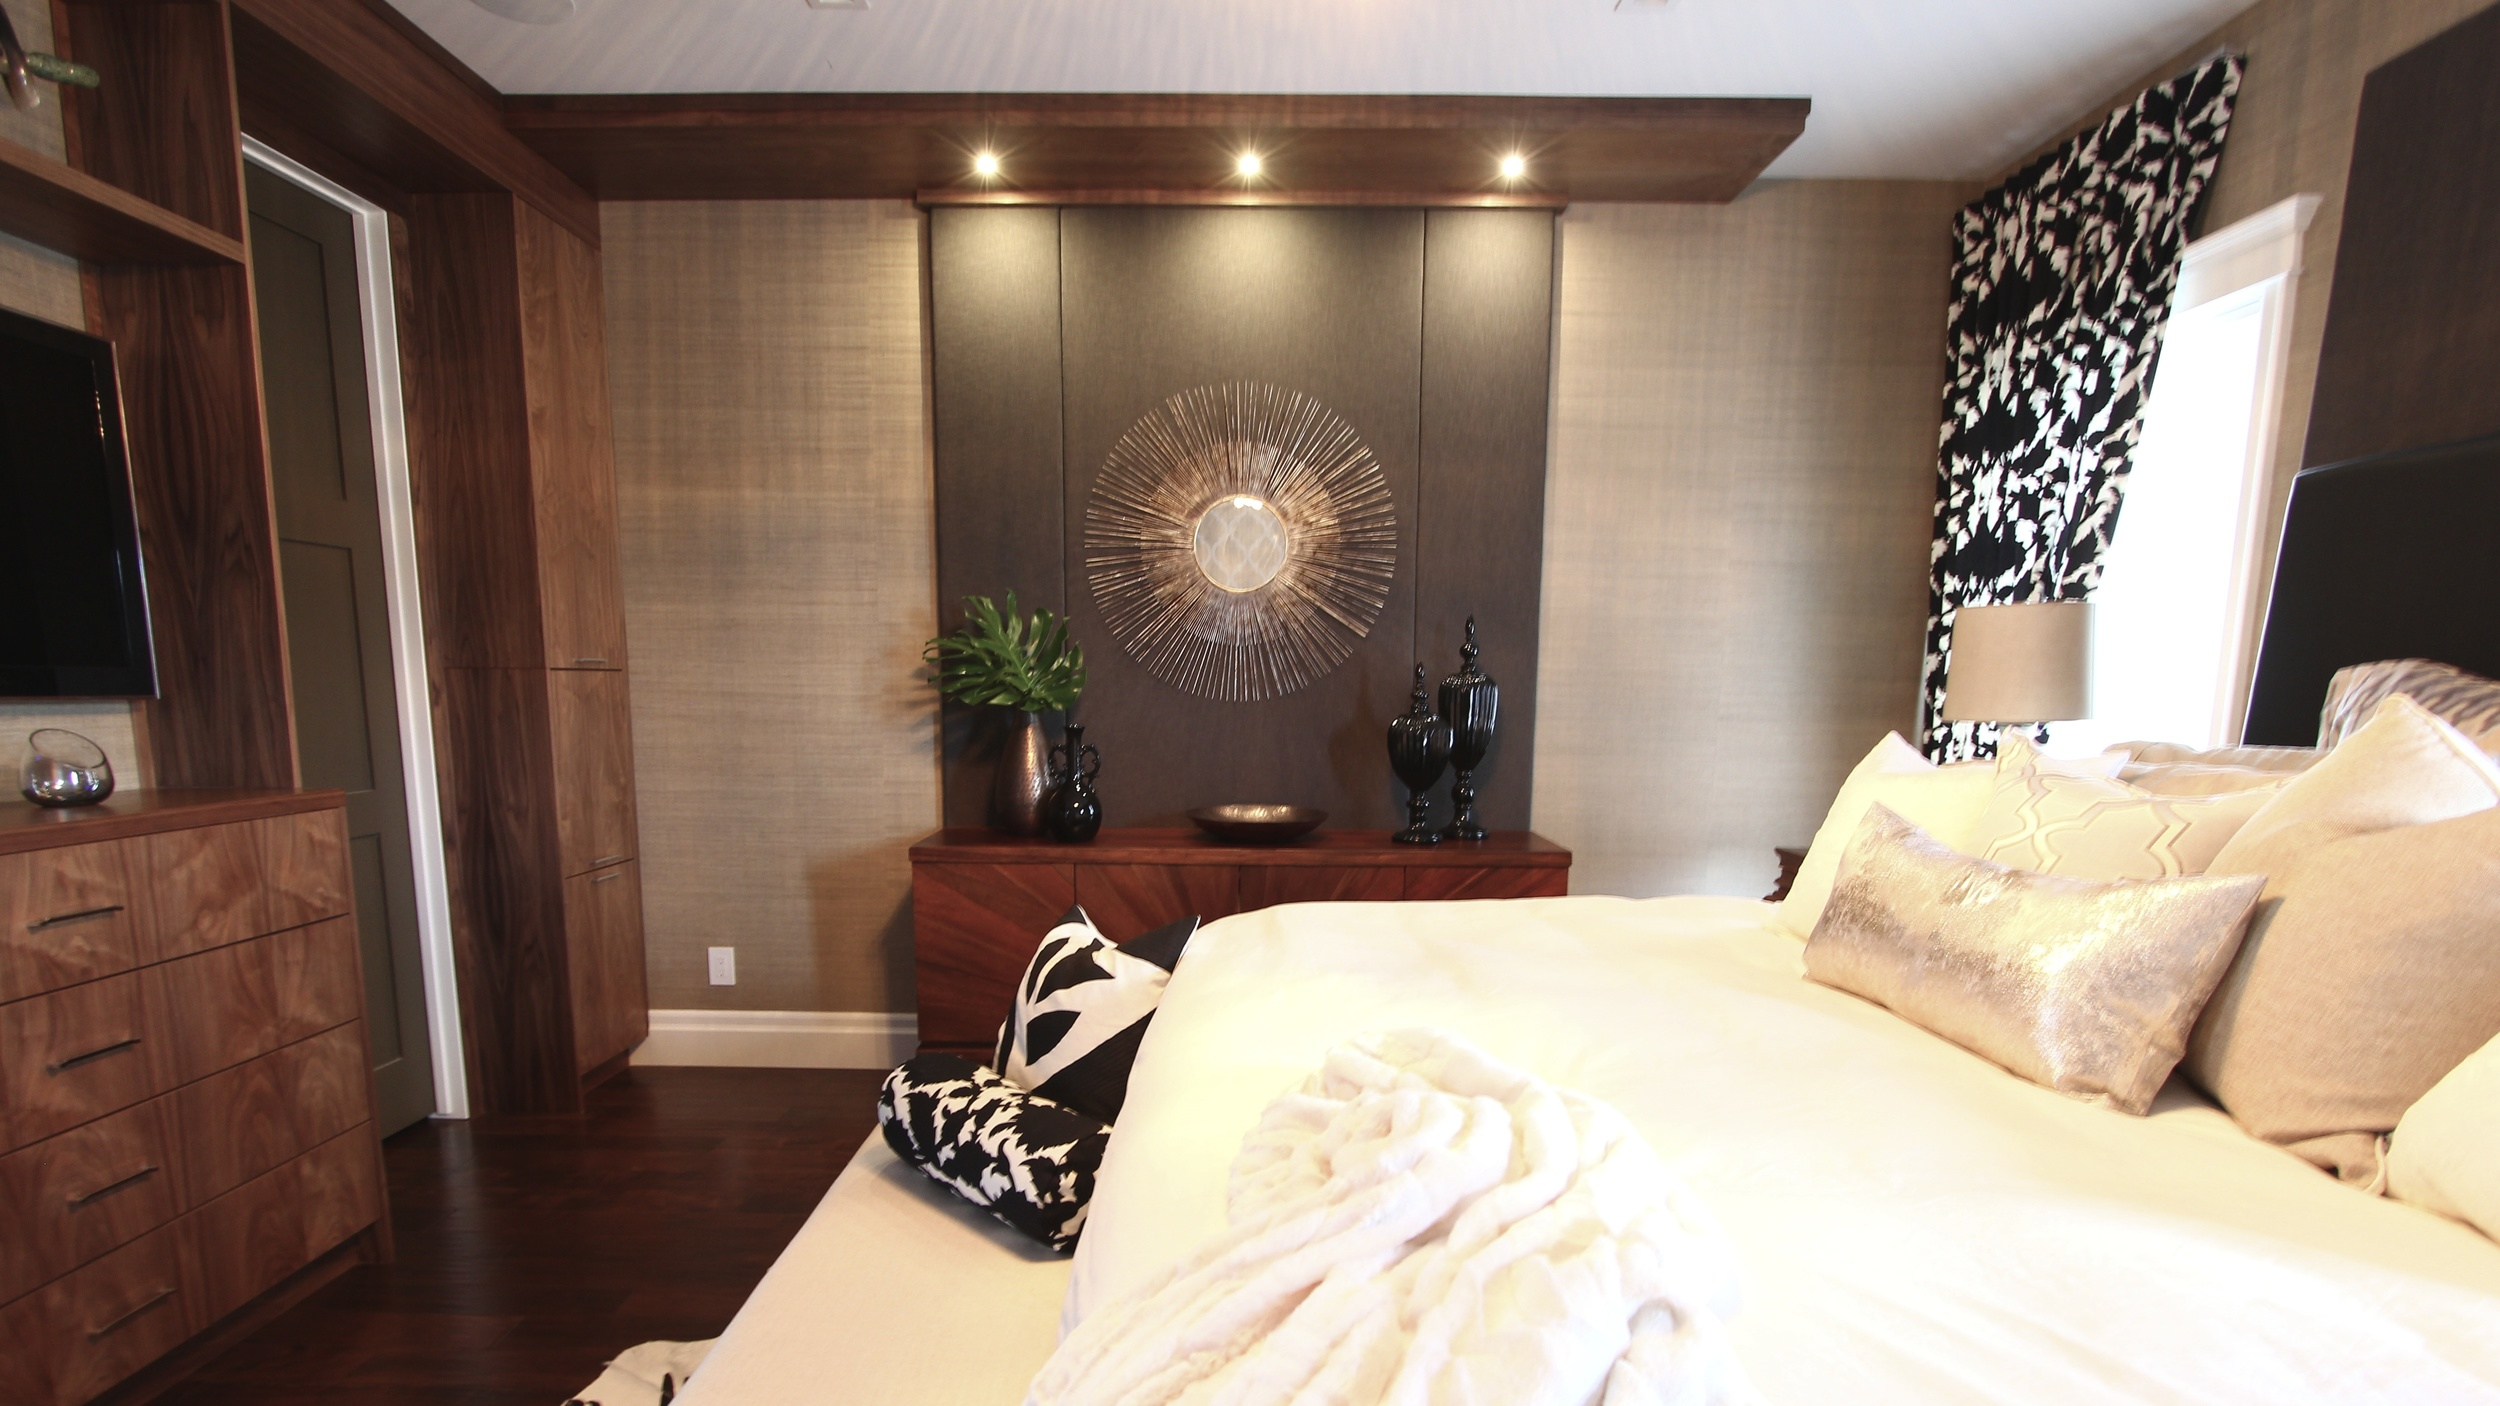 This bedroom design is layered with interesting textures, colors, and materials. Recessed lighting highlight the custom cabinetry and wall-coverings and draw the eye around the space.